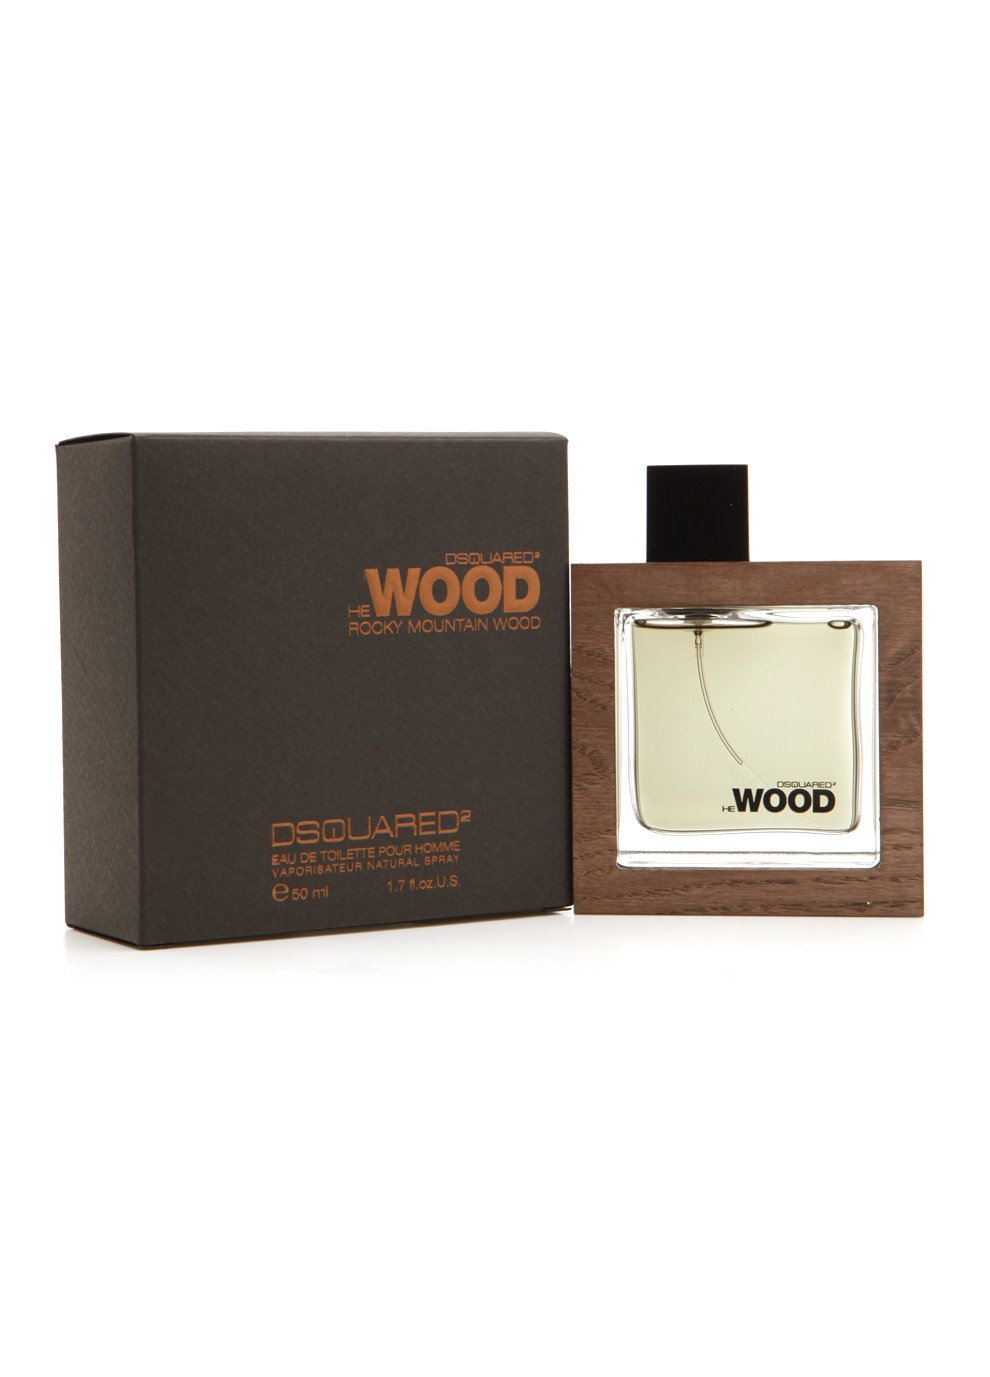 DSQUARED2 He Wood : Rocky Mountain Wood аромат для мужчин